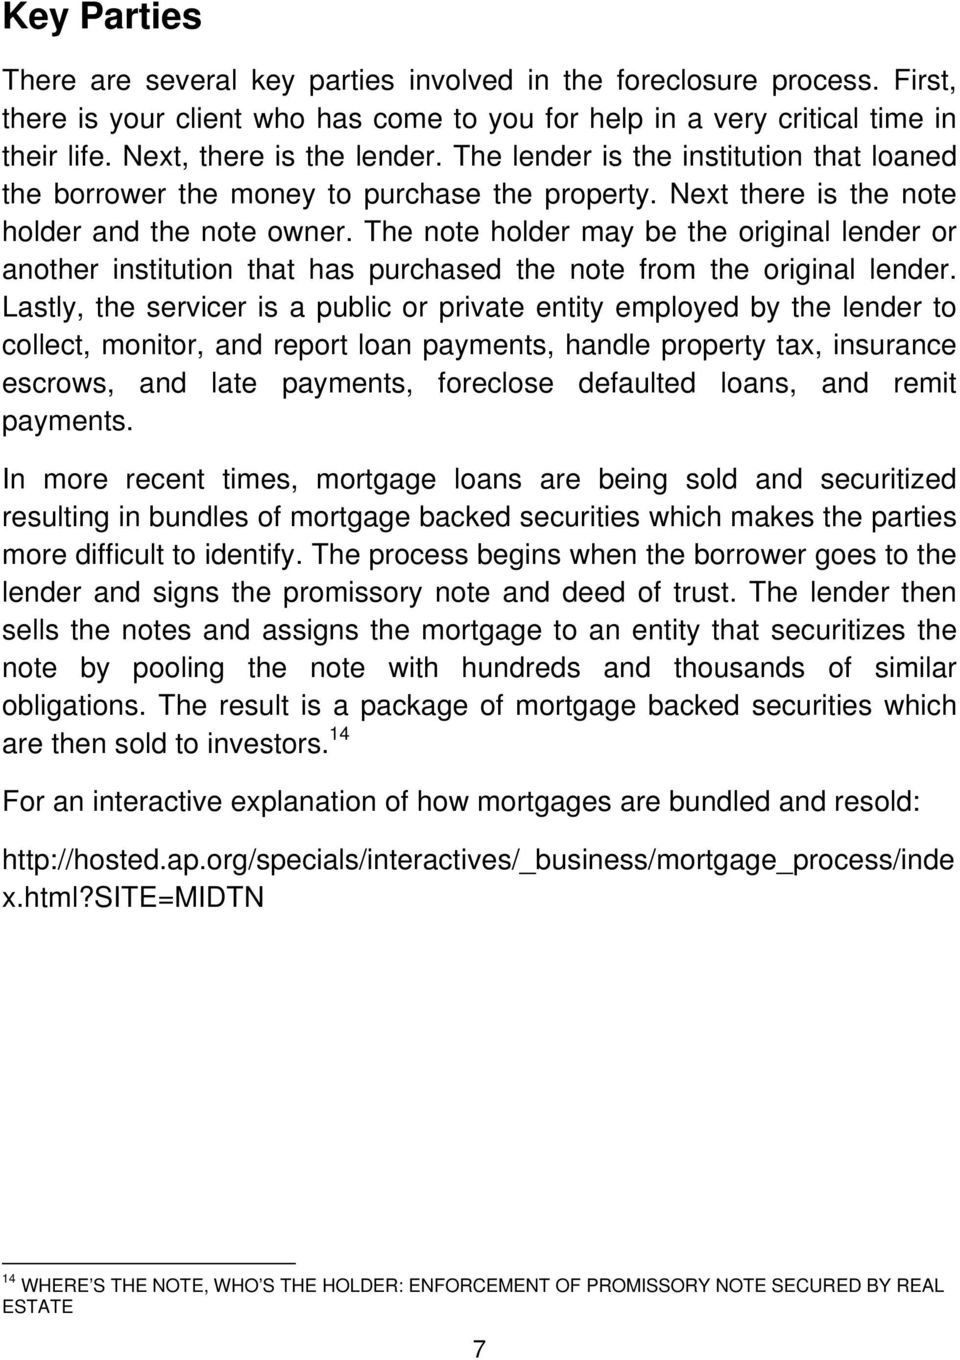 The note holder may be the original lender or another institution that has purchased the note from the original lender.